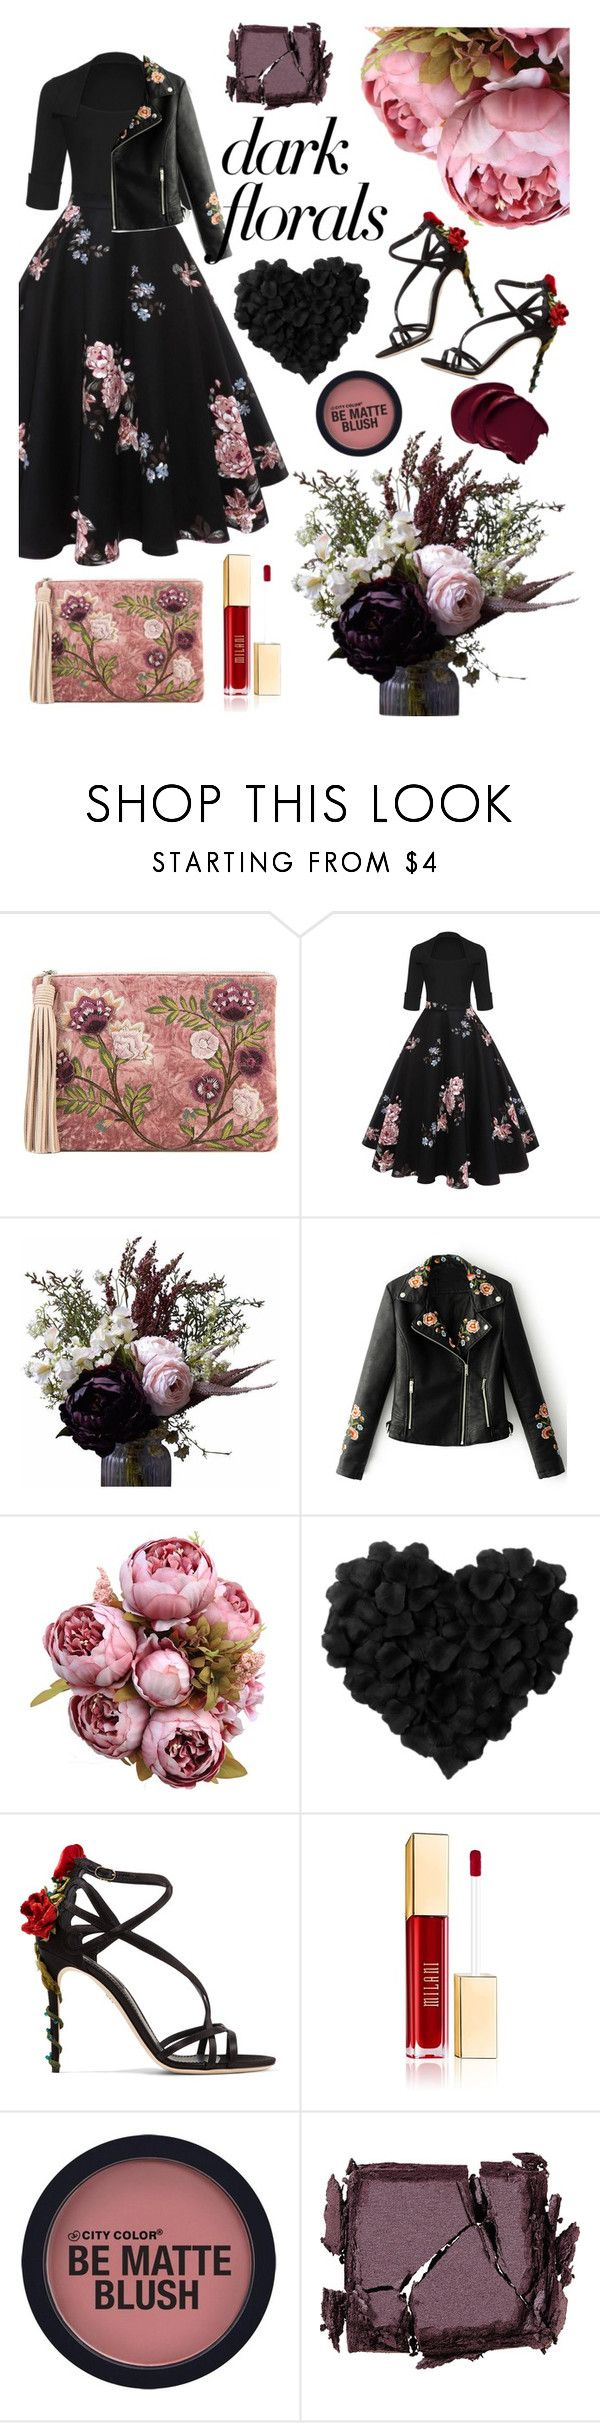 """""""071"""" by holography ❤ liked on Polyvore featuring Sam Edelman, Abigail Ahern, WithChic, Dolce&Gabbana and Surratt"""